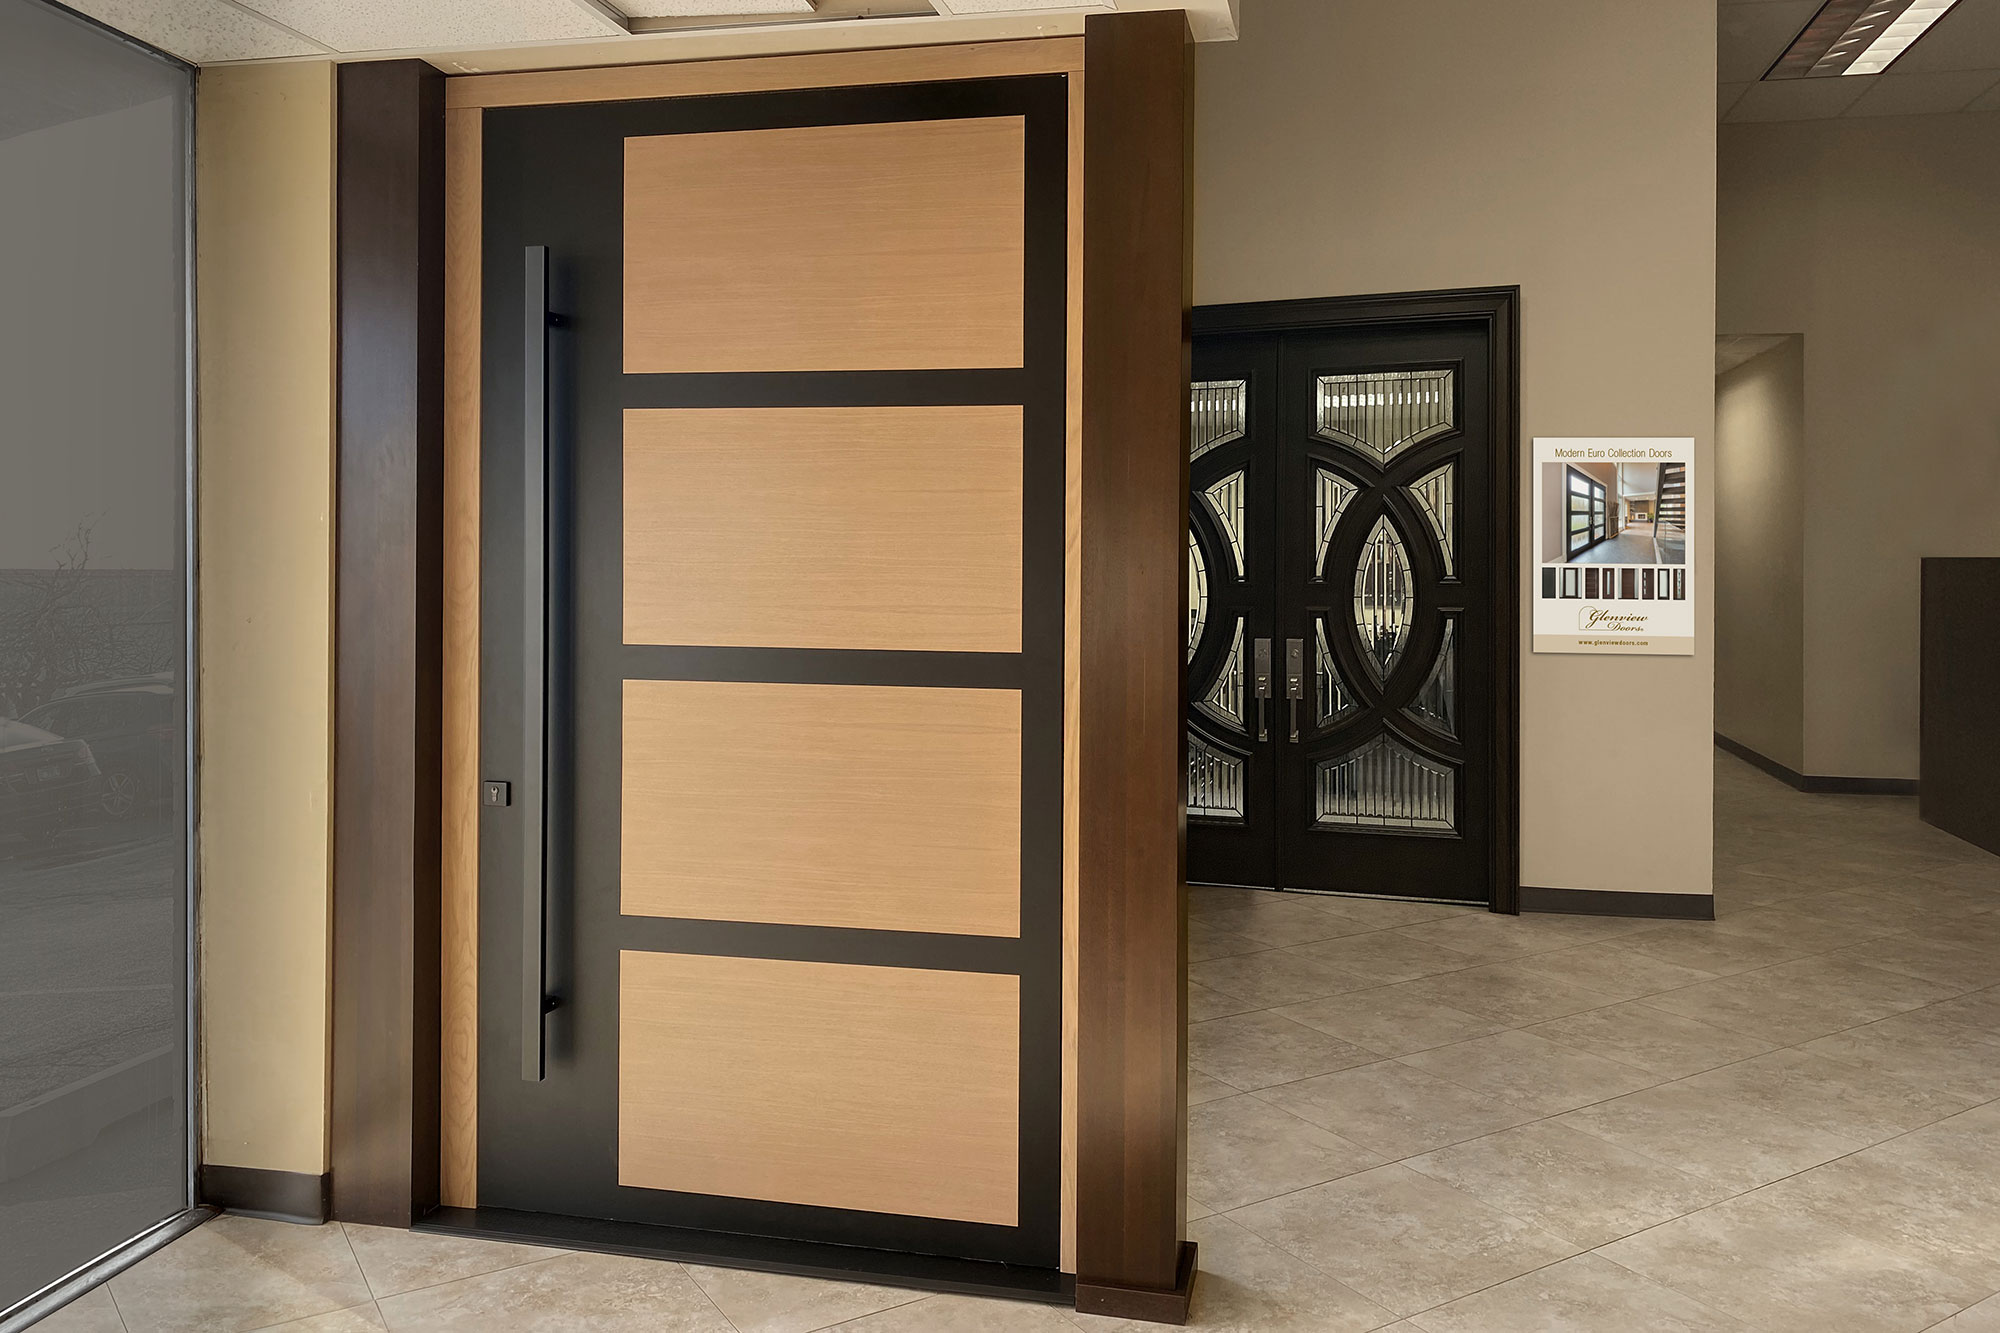 Pivot Entry Door On Display In Doors For Builders Showroom, Elk Grove IL